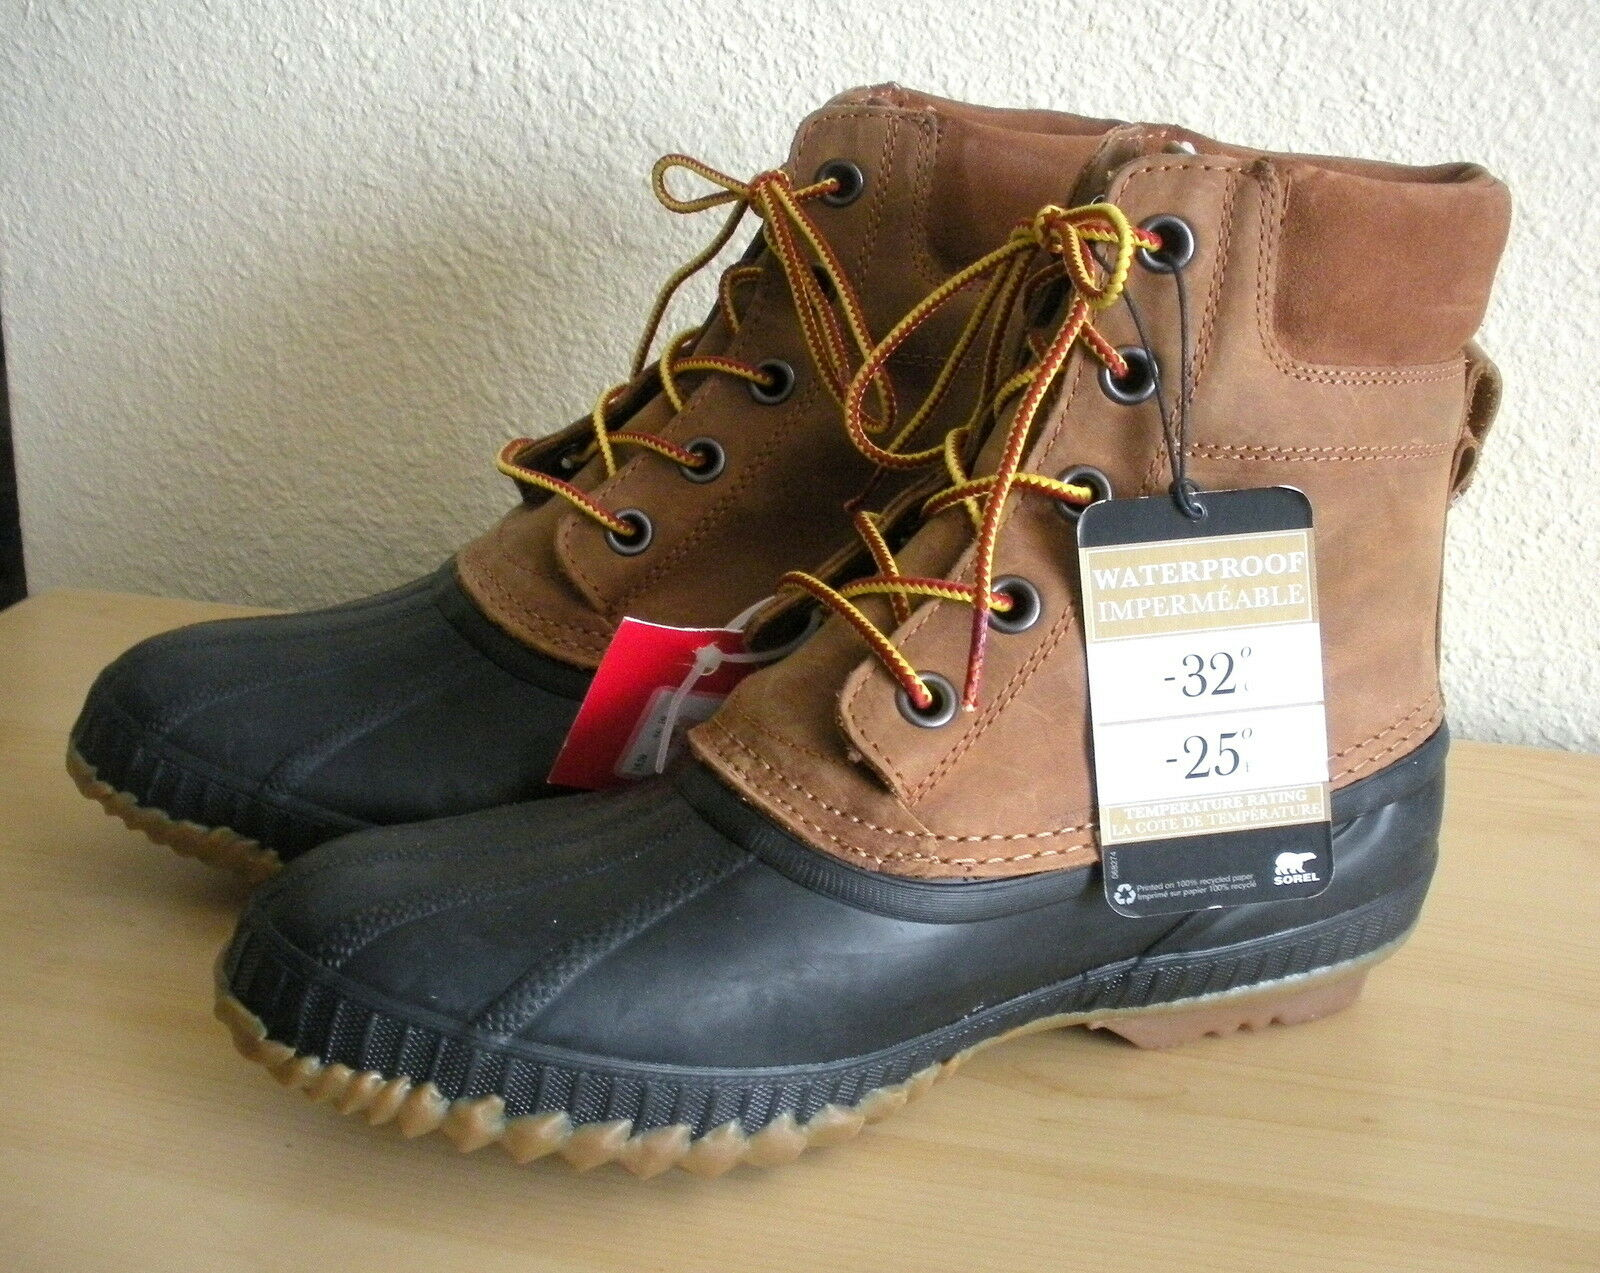 Sorel Cheyanne NM1704-224 Waterproof -25F -32C Mens Leather Rubber Snow Boots 10